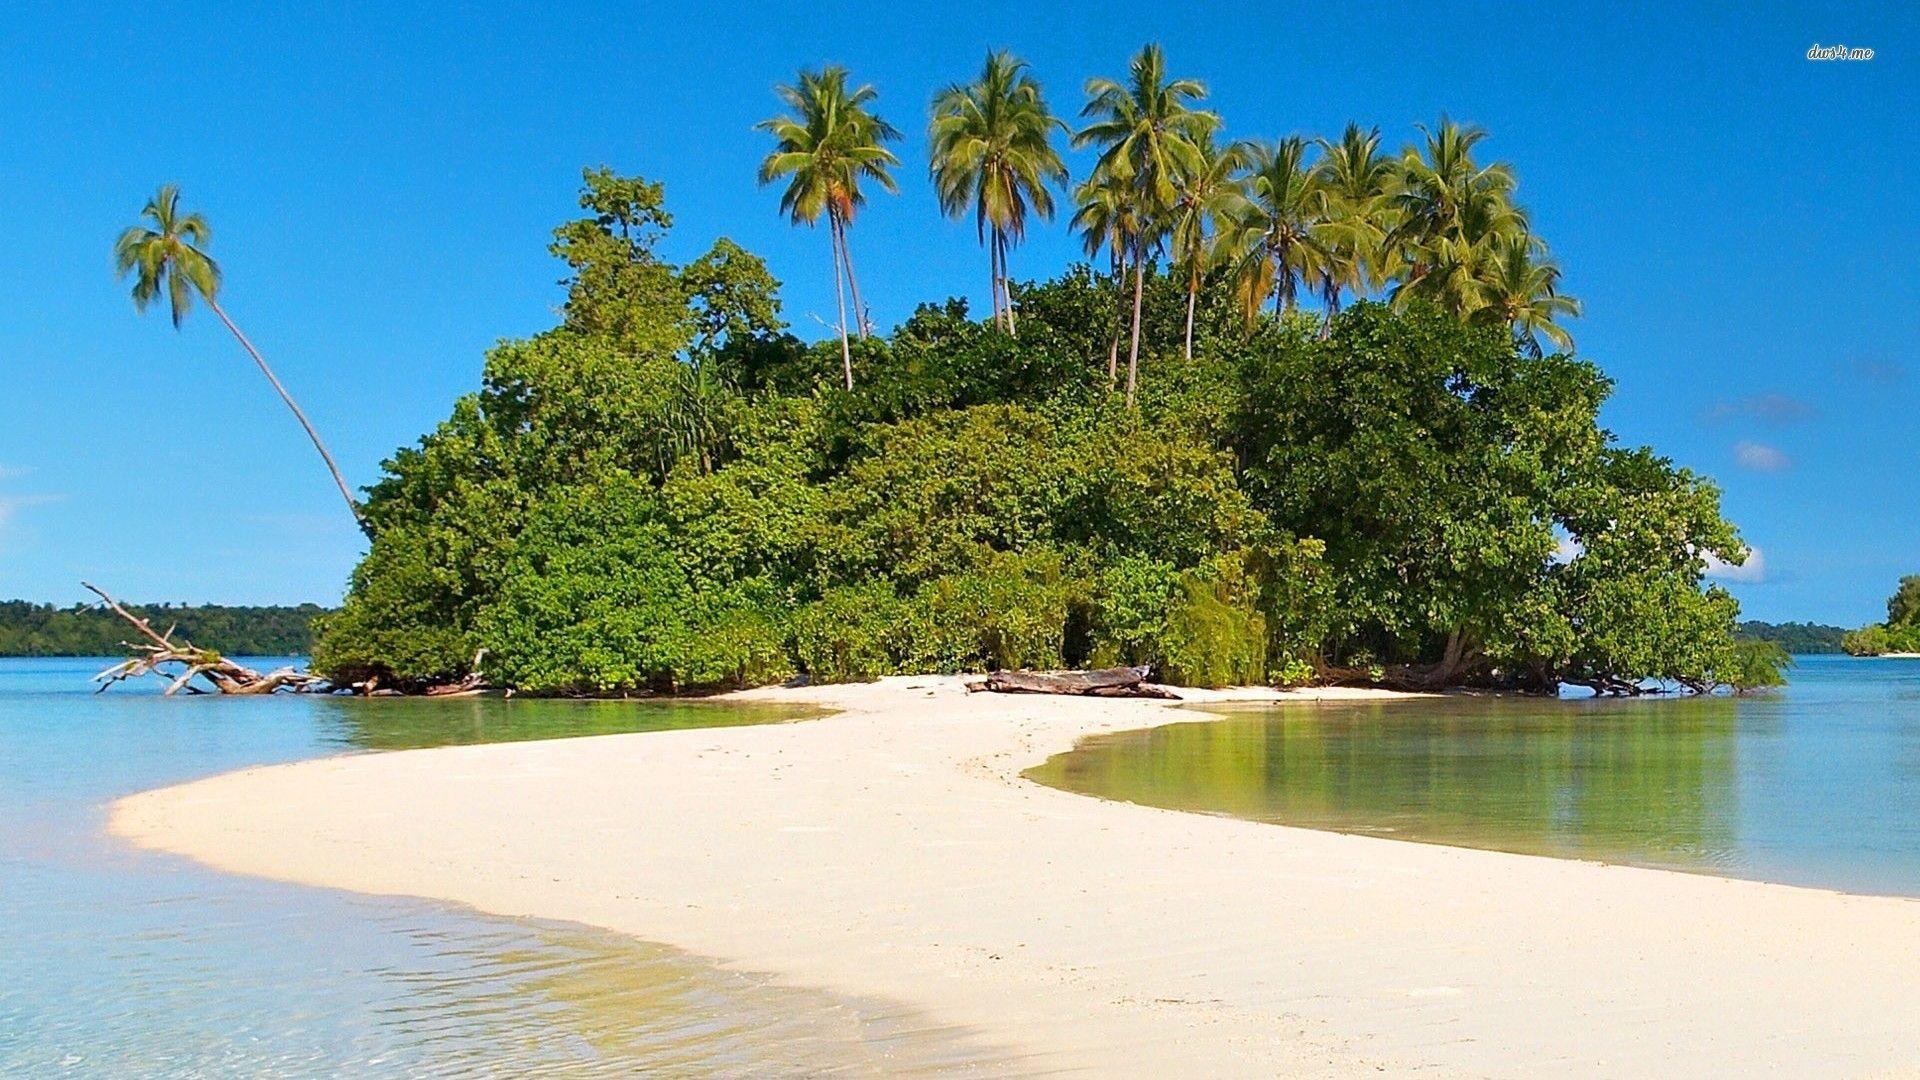 Small island wallpaper - Beach wallpapers - #